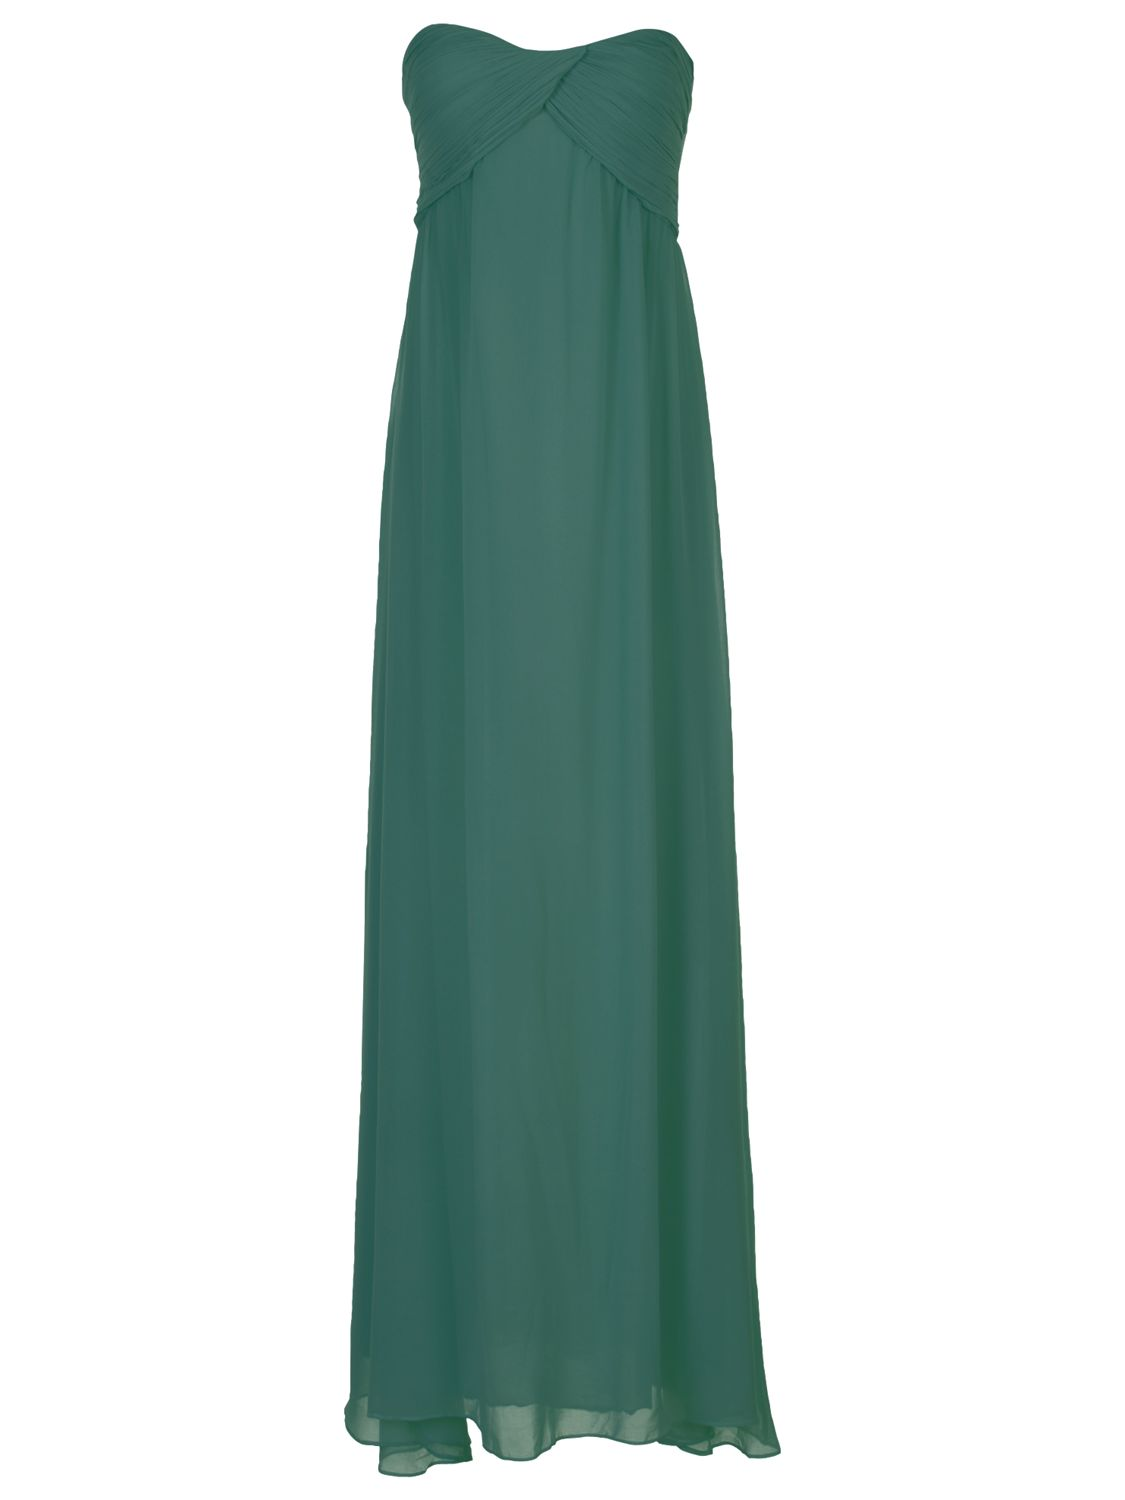 true decadence ruch bandeau maxi dress dark teal, true, decadence, ruch, bandeau, maxi, dress, dark, teal, true decadence, 8|14|18|12|16|10, clearance, womenswear offers, womens dresses offers, new years party offers, women, womens dresses, party outfits, evening gowns, special offers, edition magazine, into the deep, eveningwear offers, 1725942